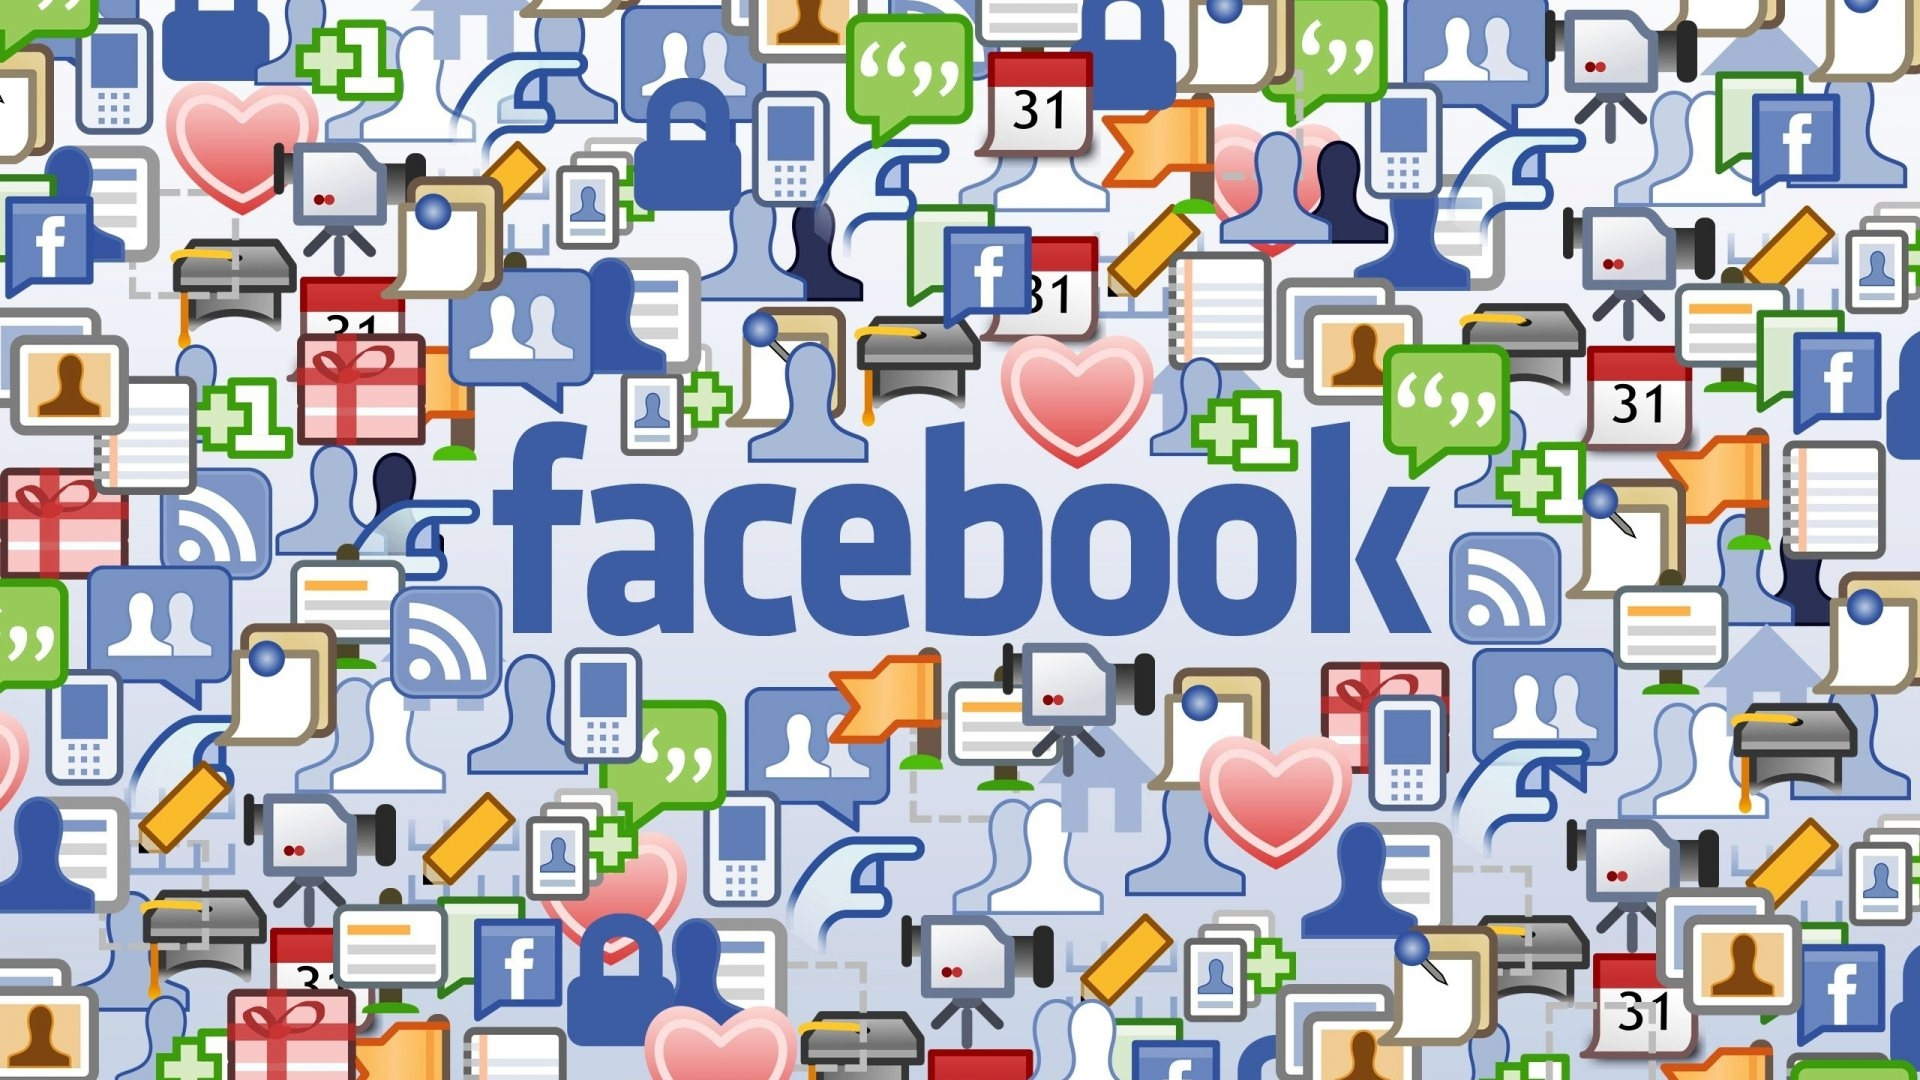 Social Networking Facebook Wallpaper